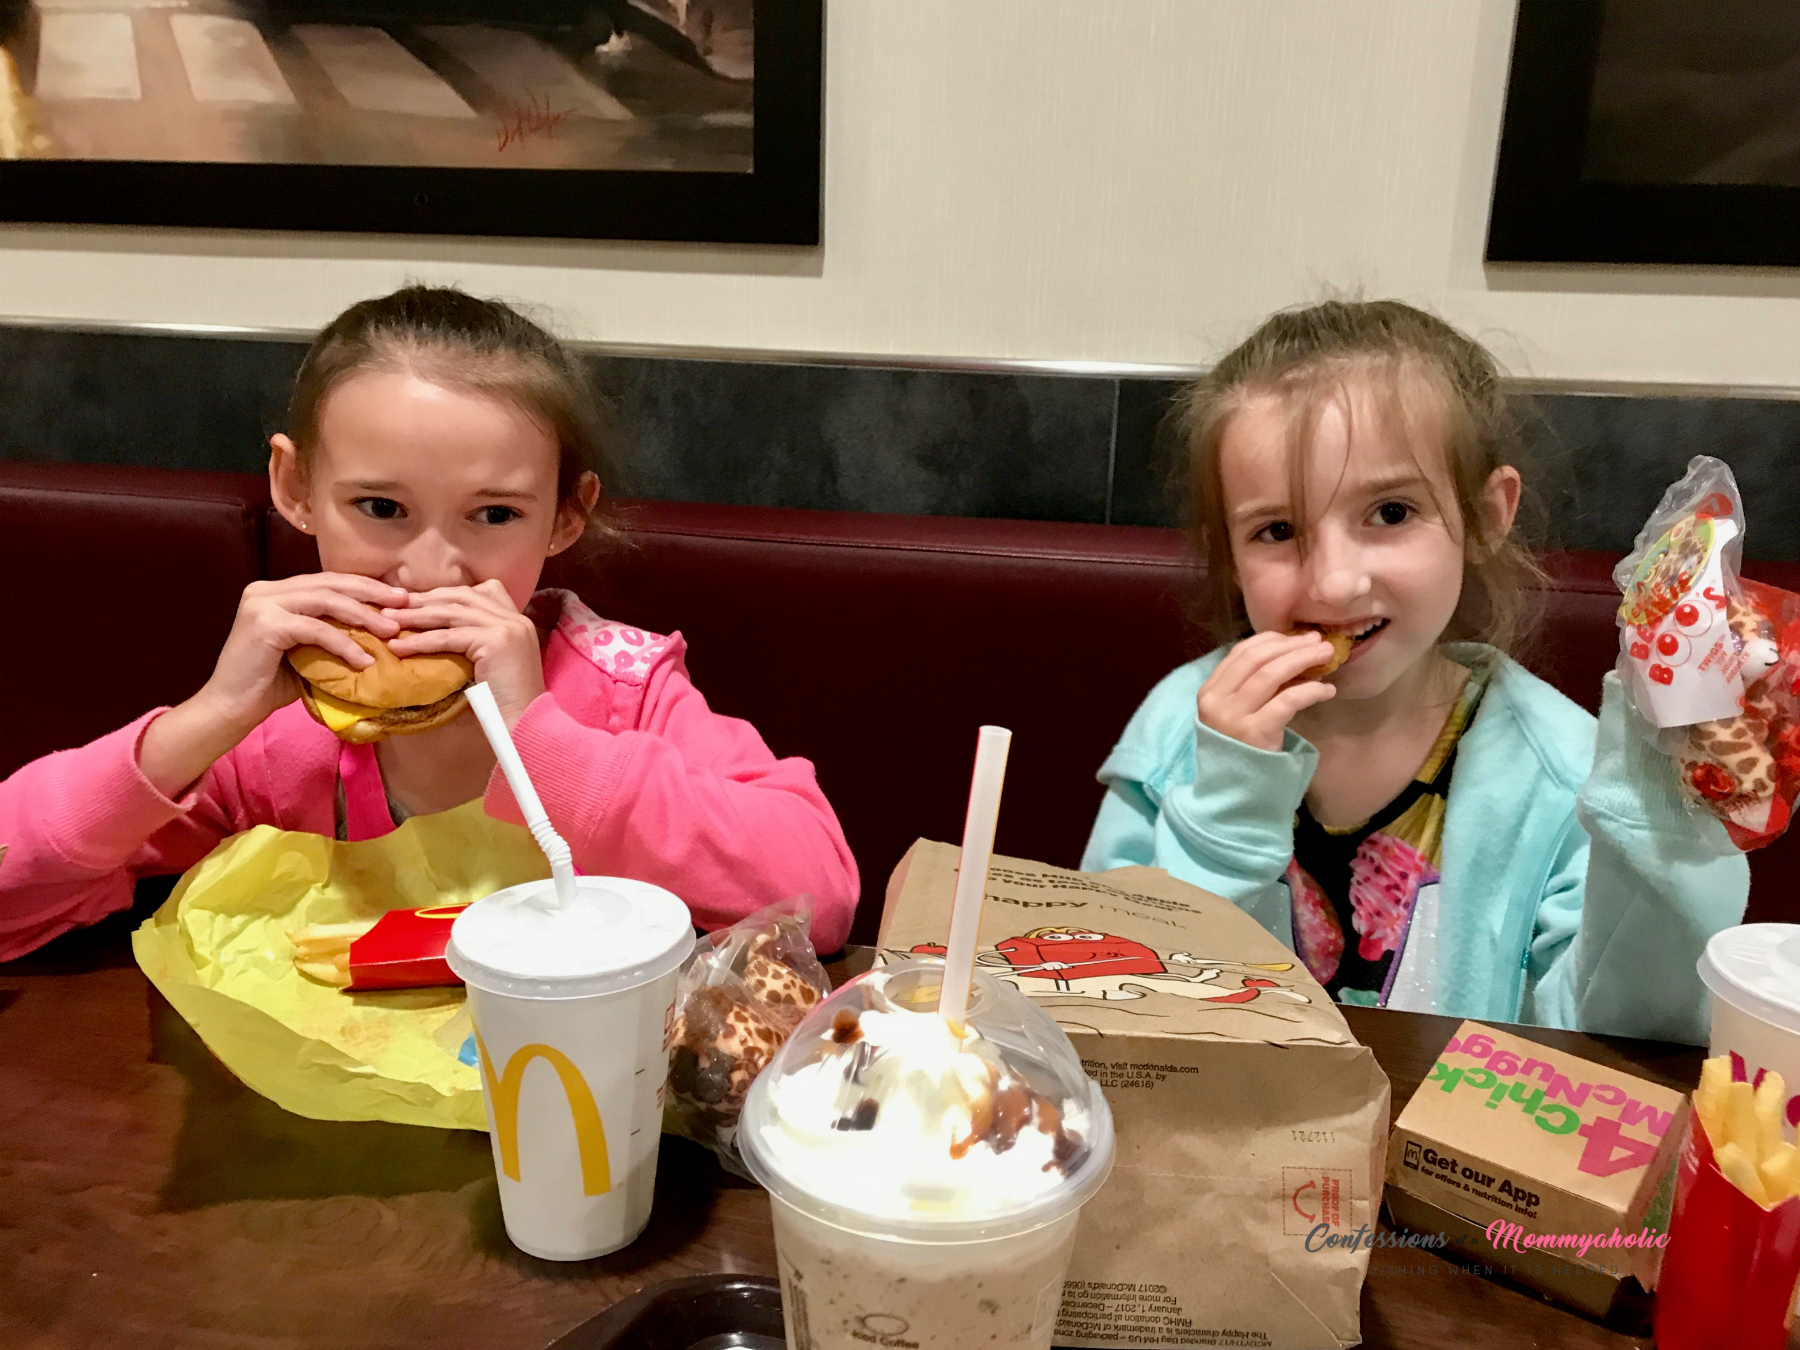 Girls eating McDonald's